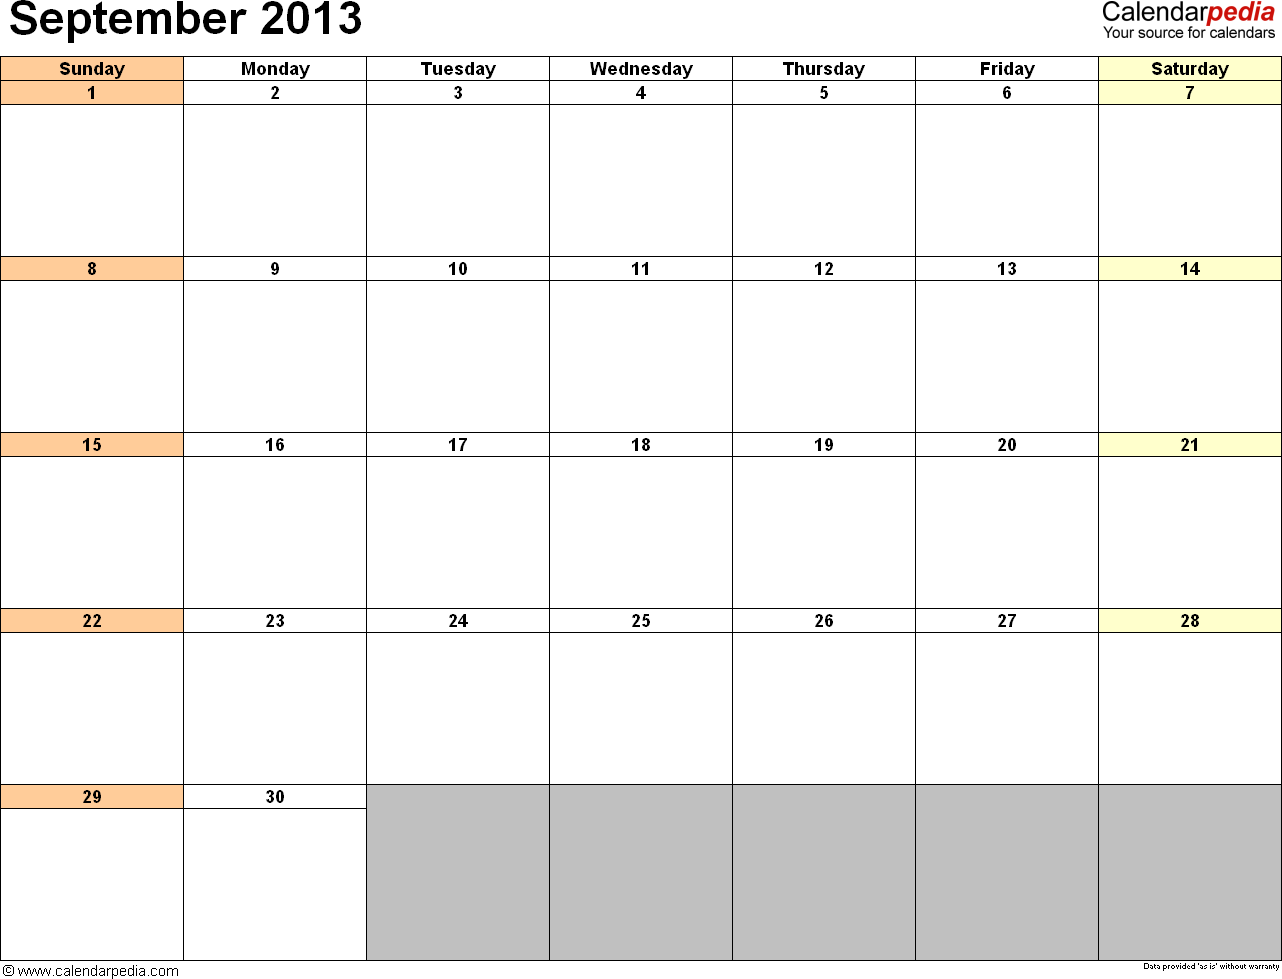 September 2013 calendar printable template